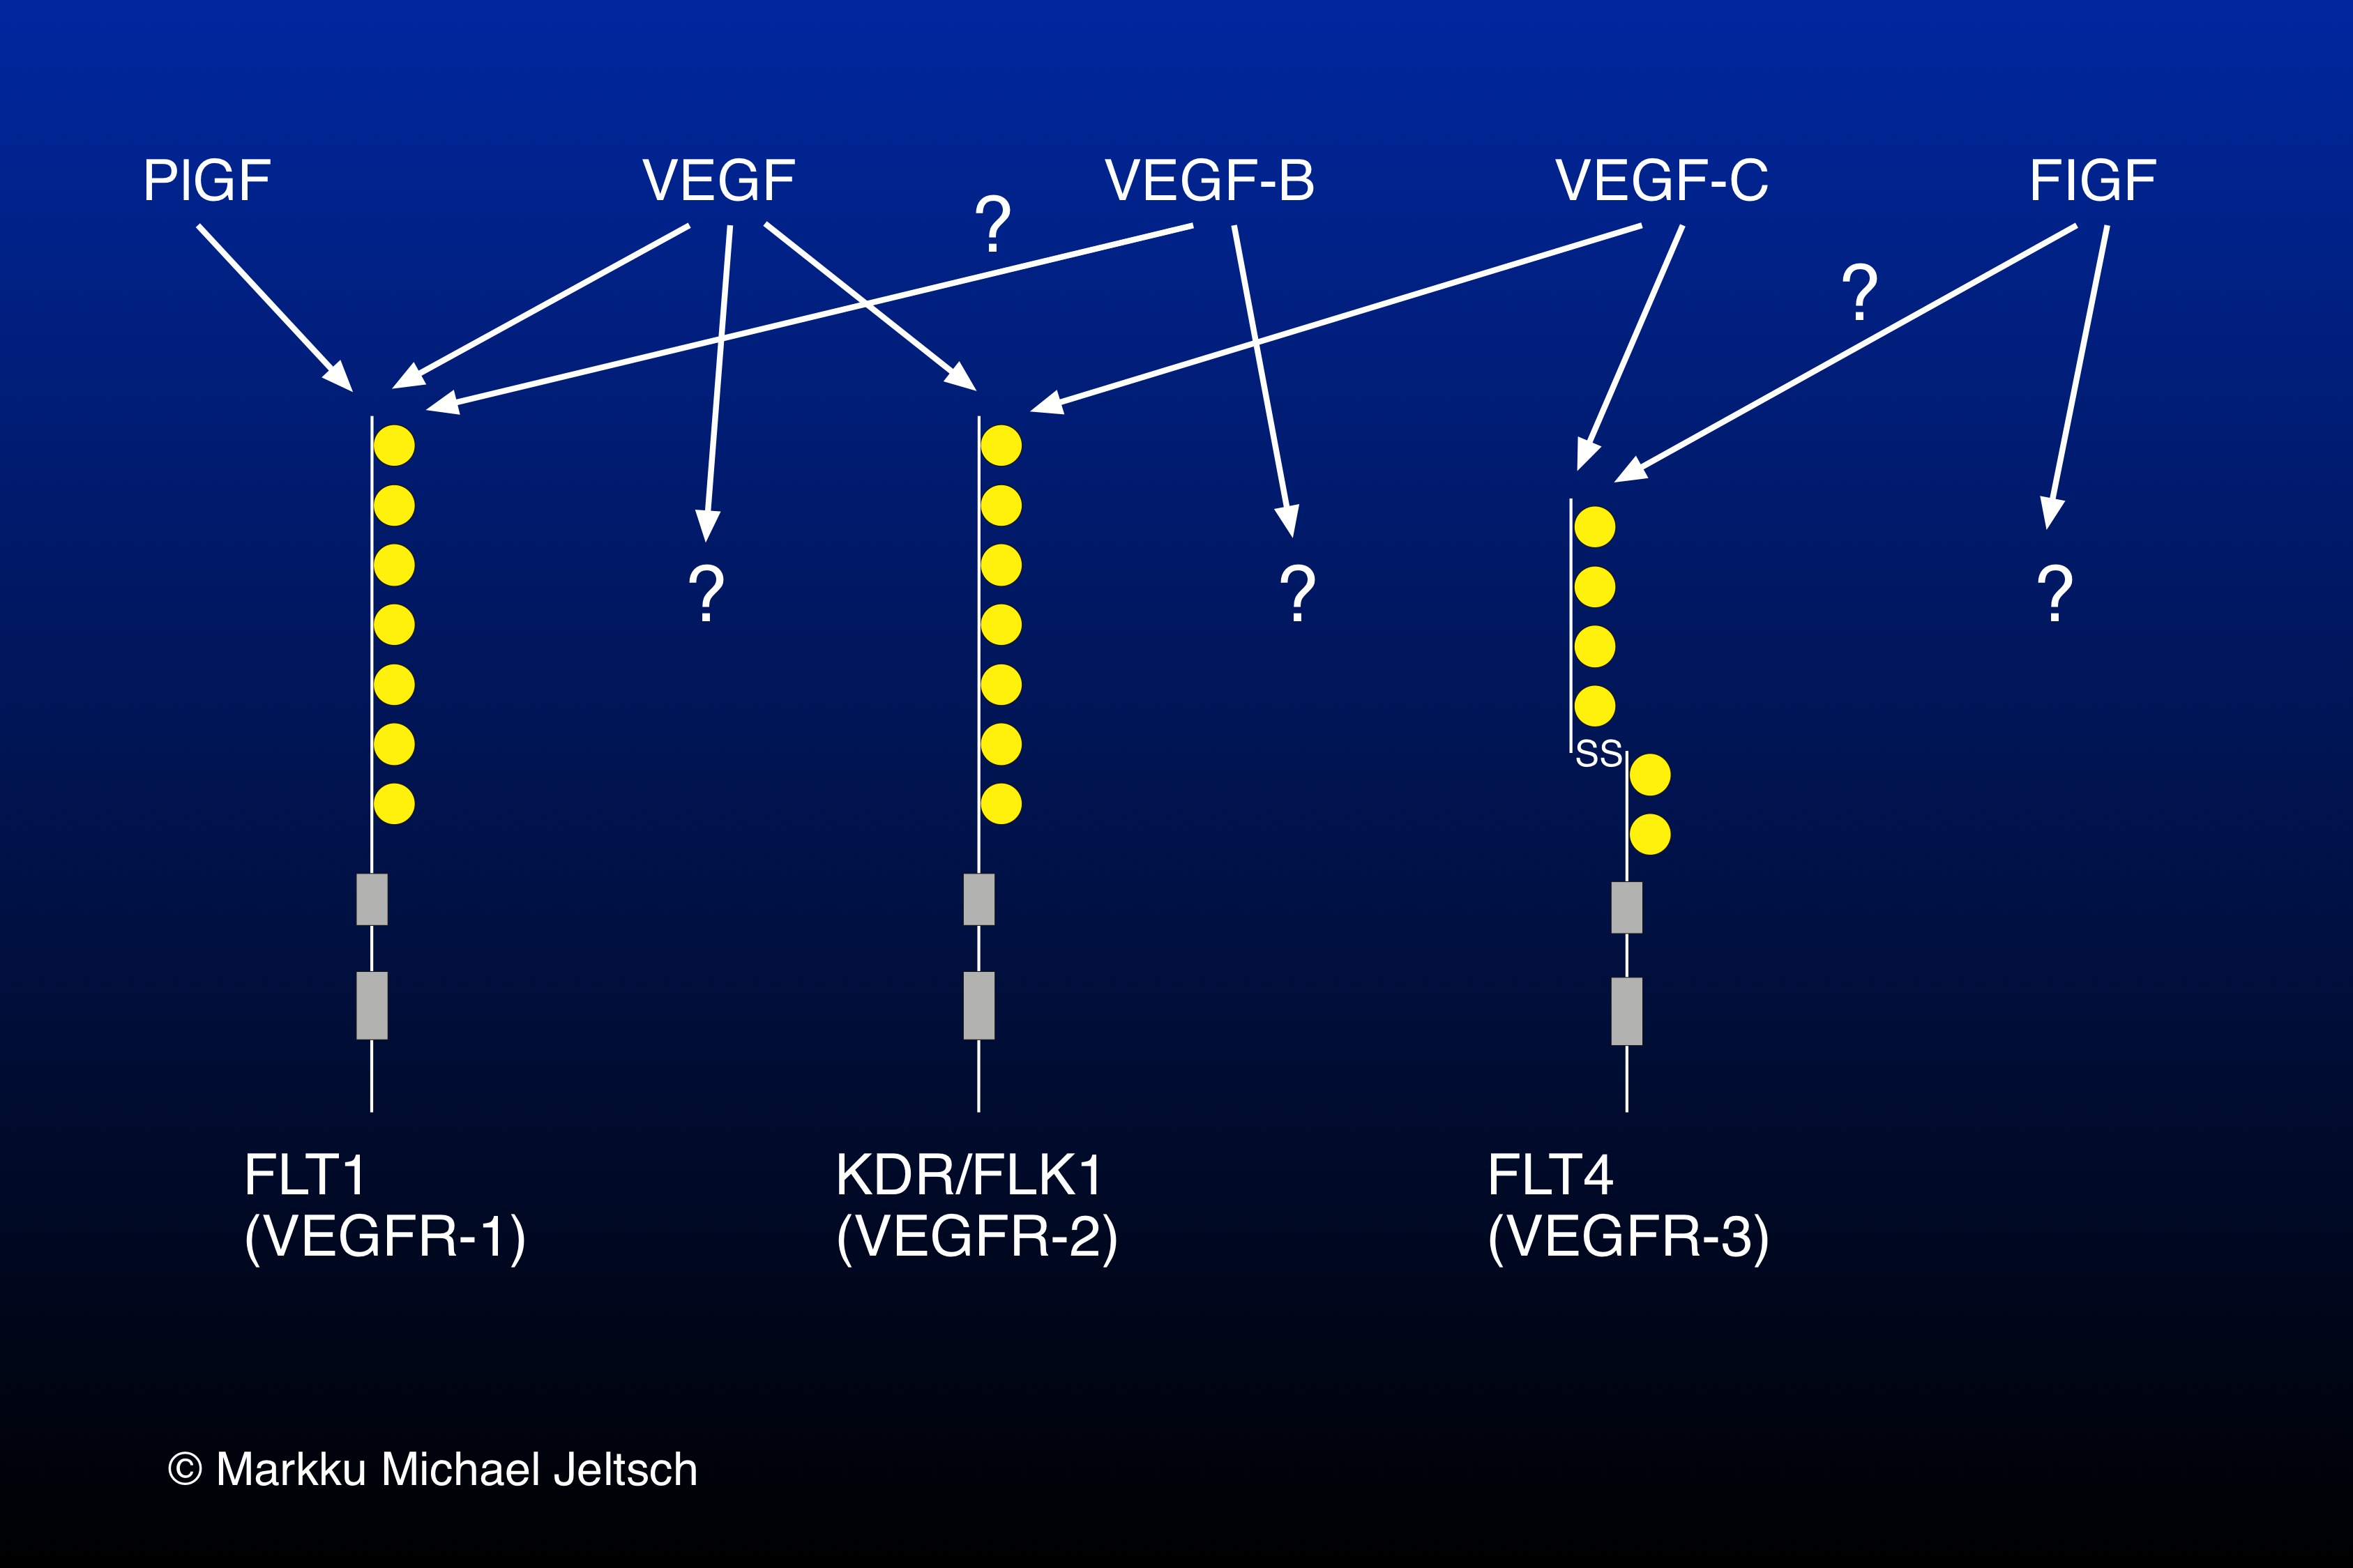 receptor specificity within the VEGF family